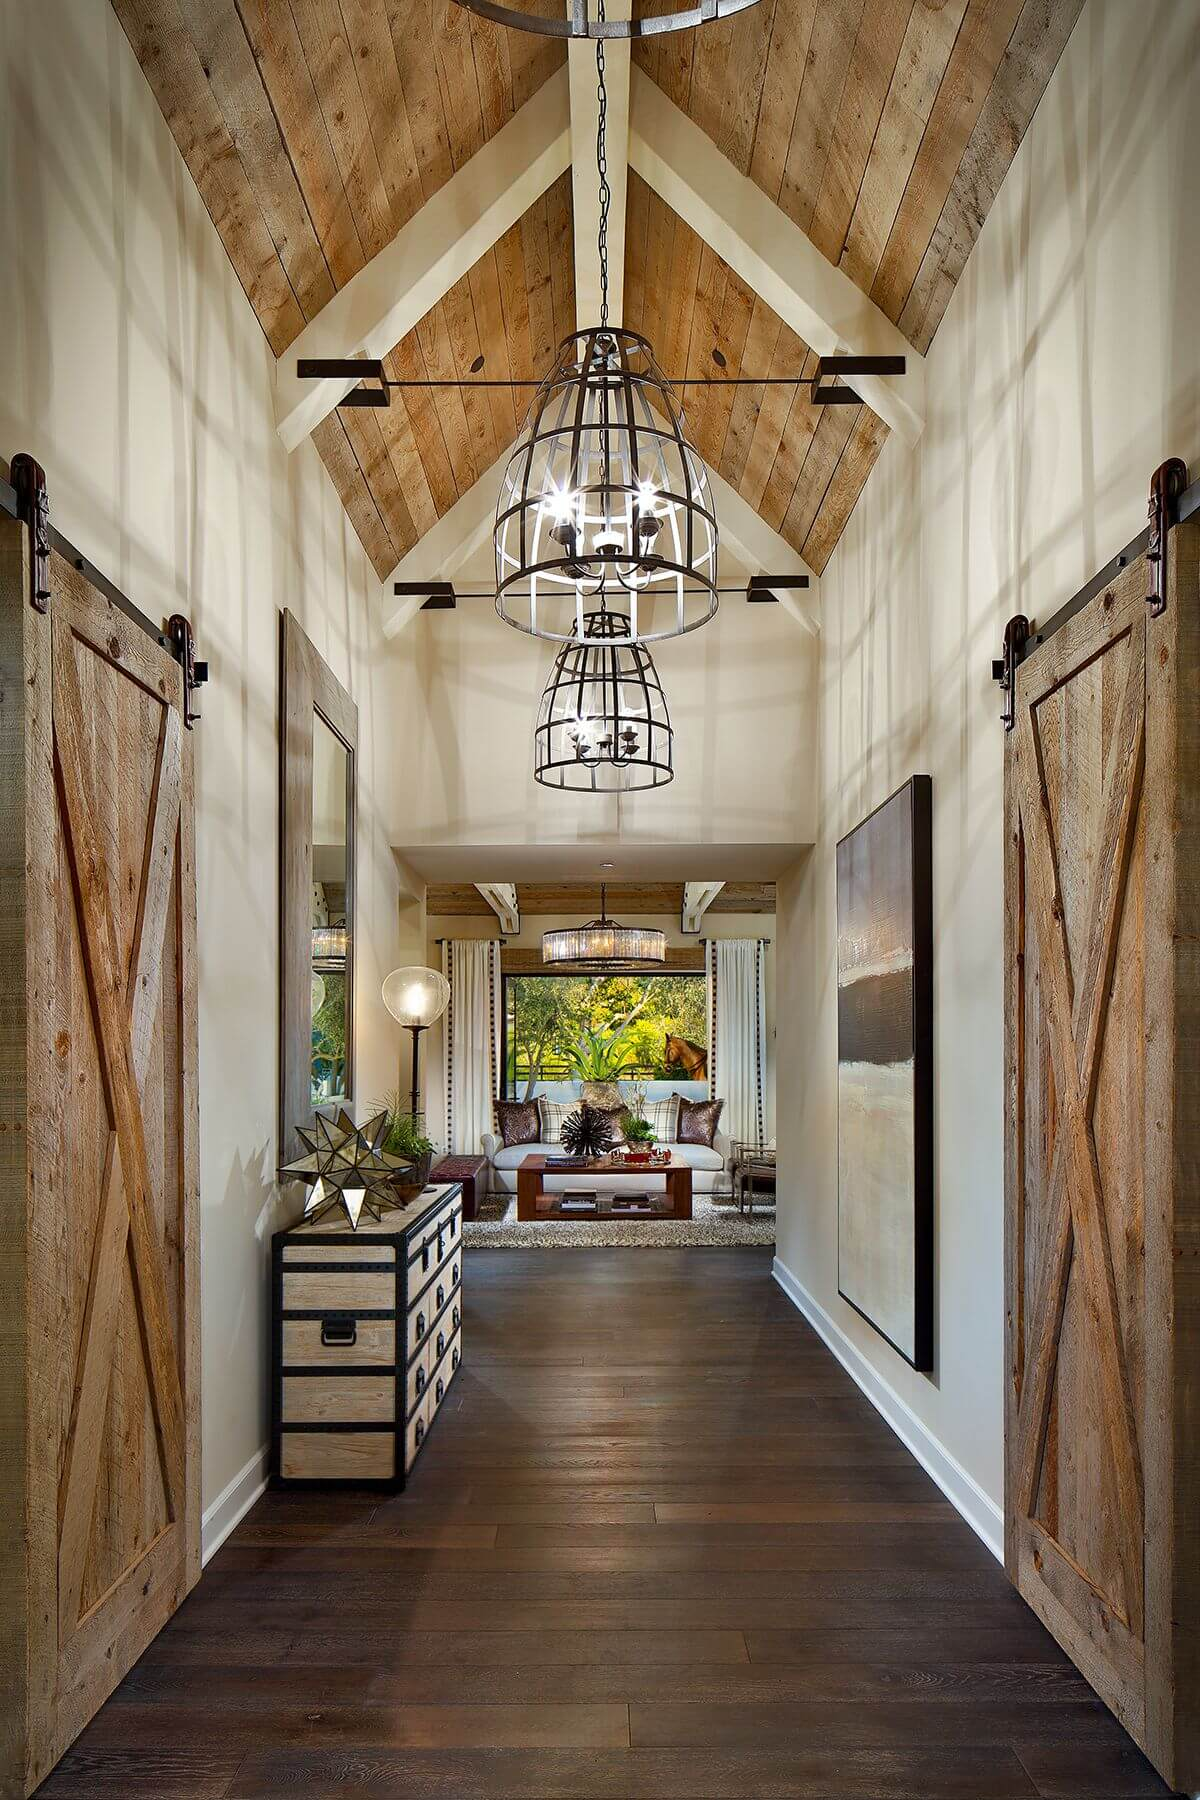 Images Of Modern Farmhouse Interiors 35 43 Best Farmhouse Interior Ideas And Designs For 2019